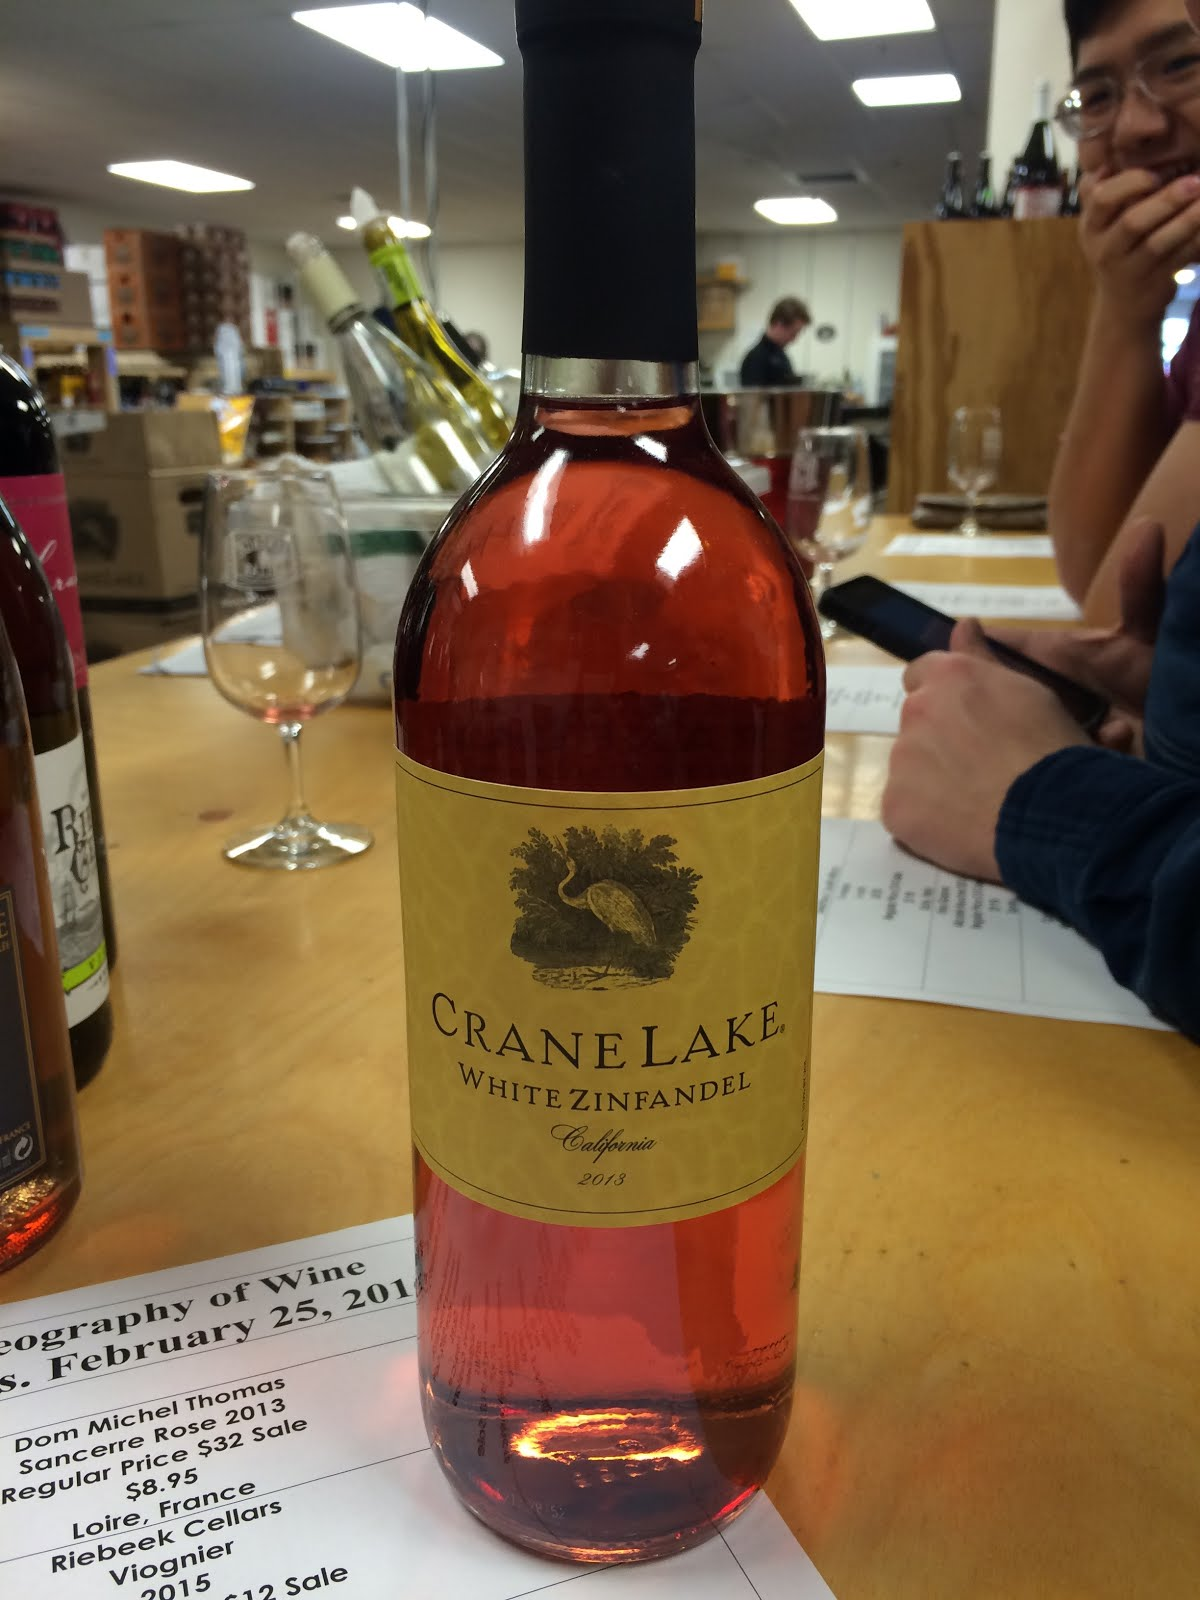 Vintage Cellar Review Light pink wine with floral and tropical aromas flavors of strawberry ... & Caitlin Brownu0027s Wine Blog: Tasting - Crane Lake White Zinfandel